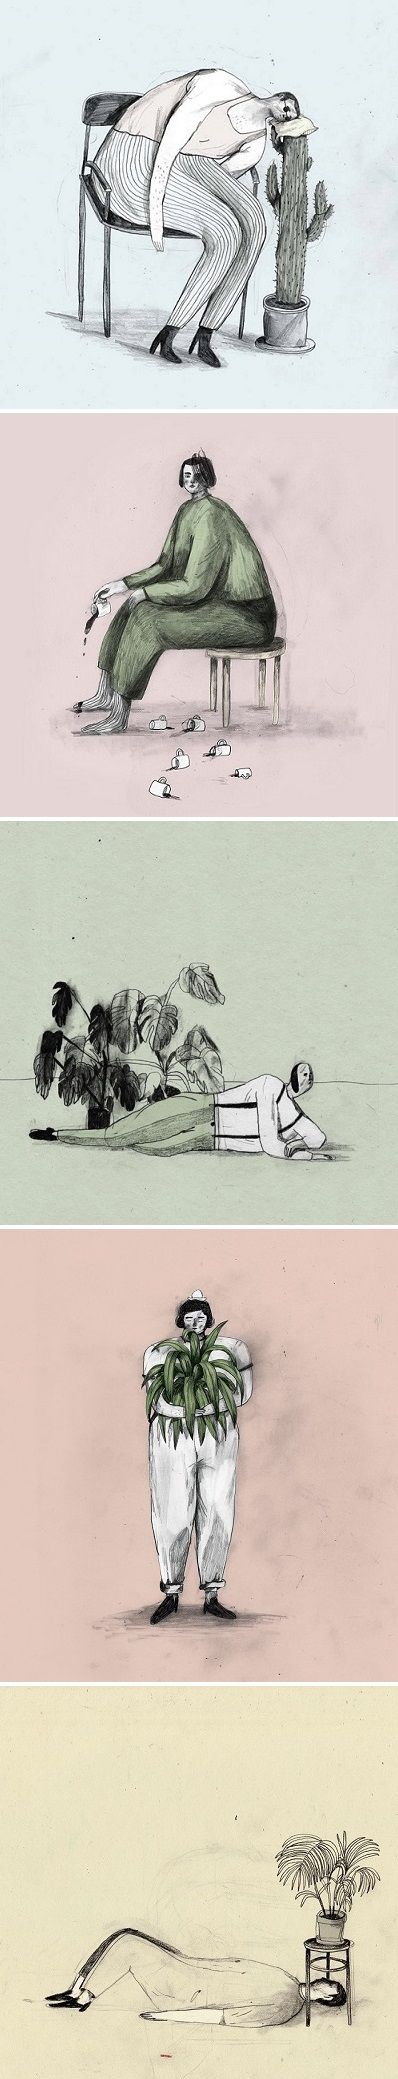 Illustrations by Marianne Engedal / on the Blog!